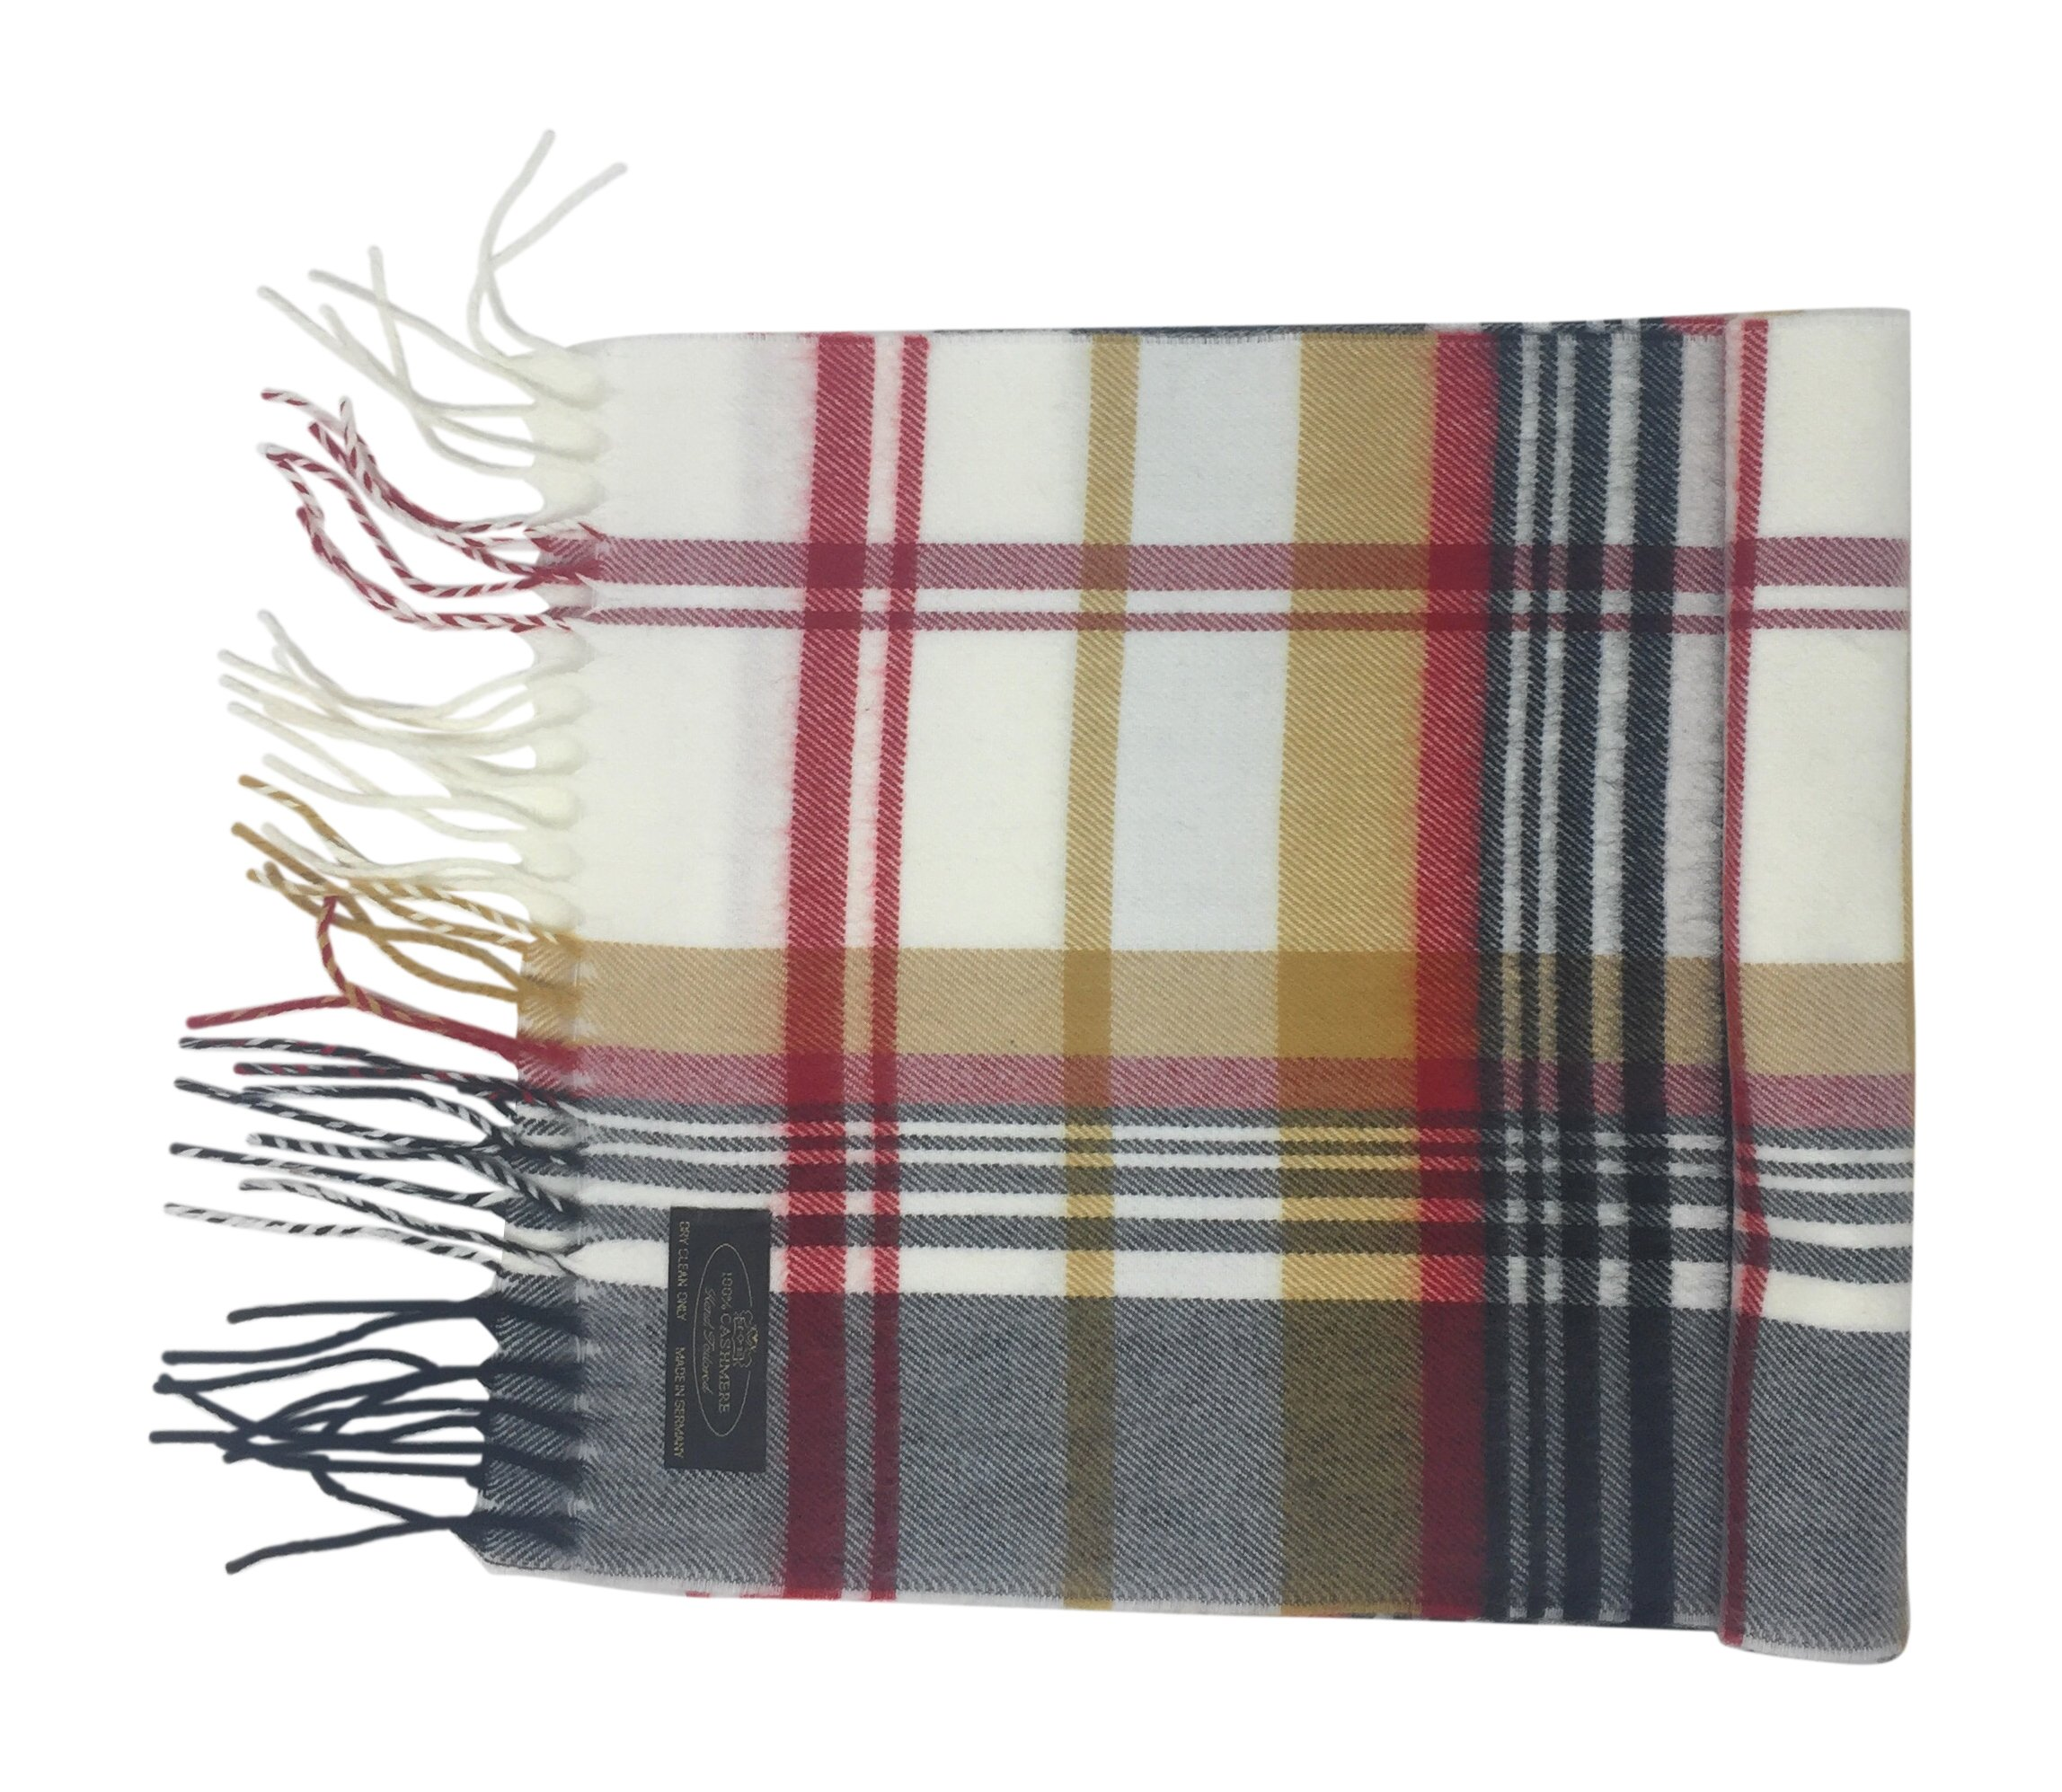 Annys 100% Cashmere Plaid Scarf 12x72 with Gift Bag - Men Cashmere - Cashmere Women (22 Colors) (Plaid - White/Black/Red/Camel)